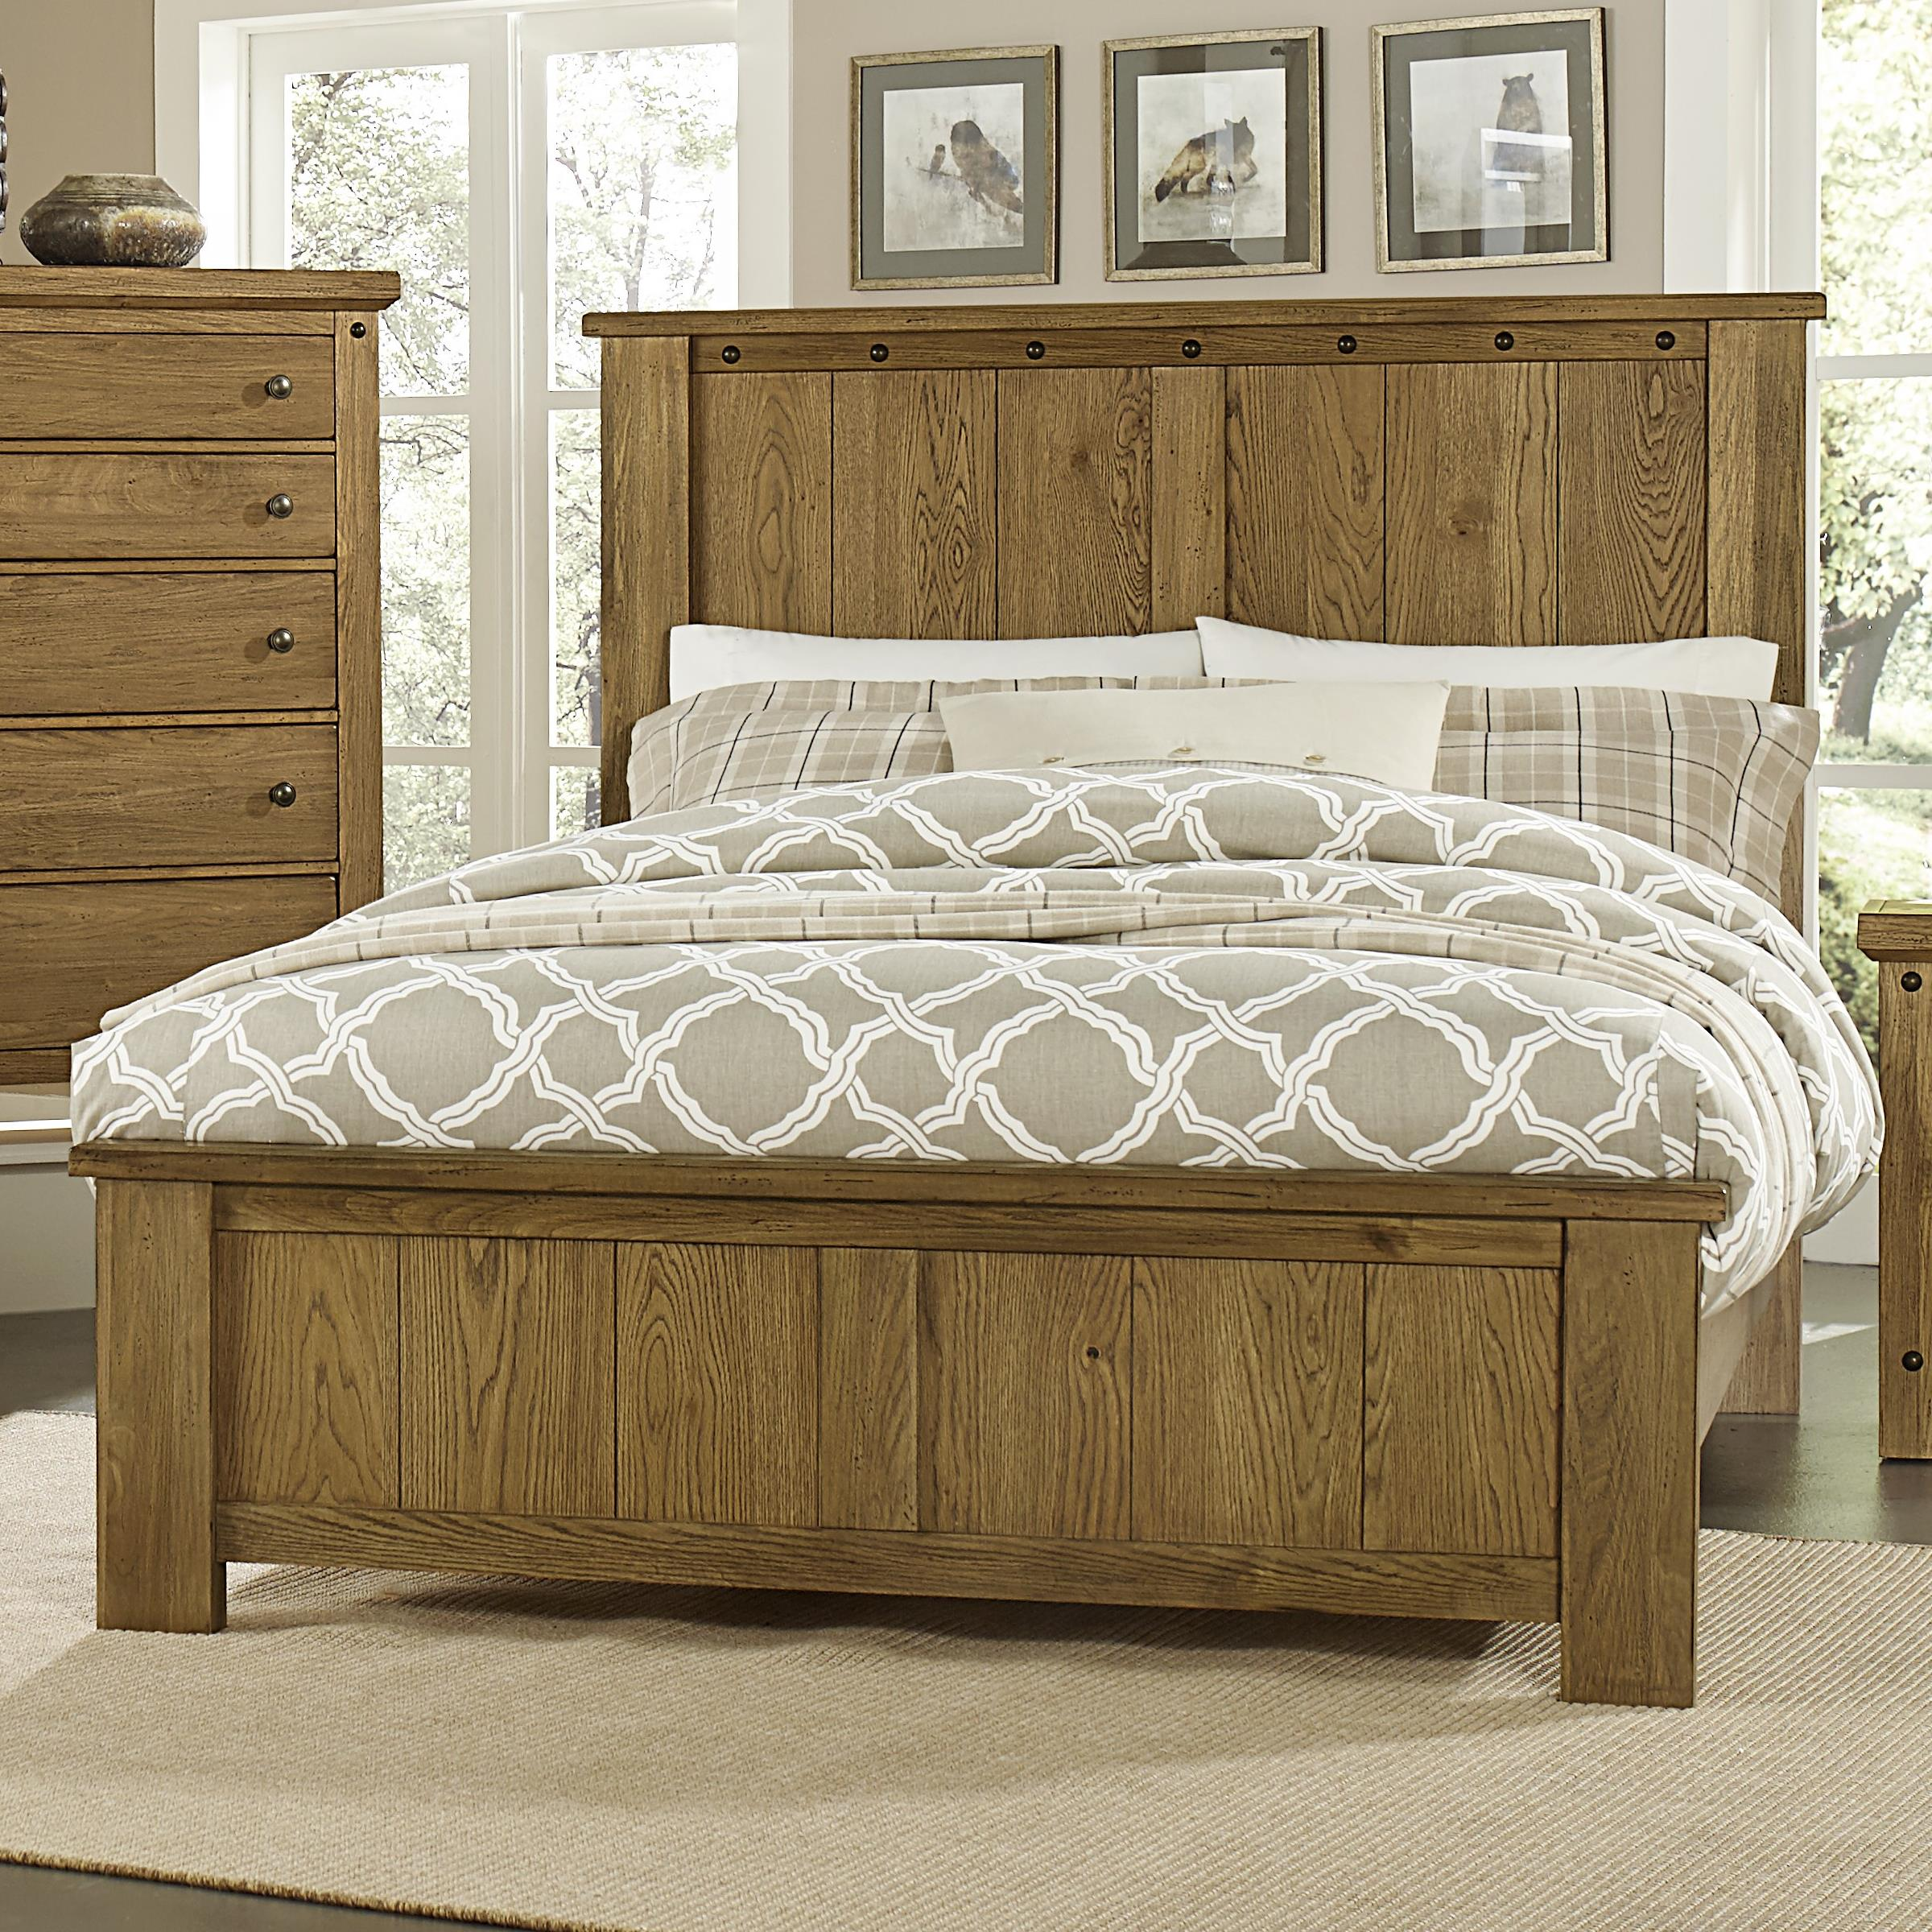 Vaughan Bassett Collaboration King Panel Bed - Item Number: 614-668+866+922+MS2